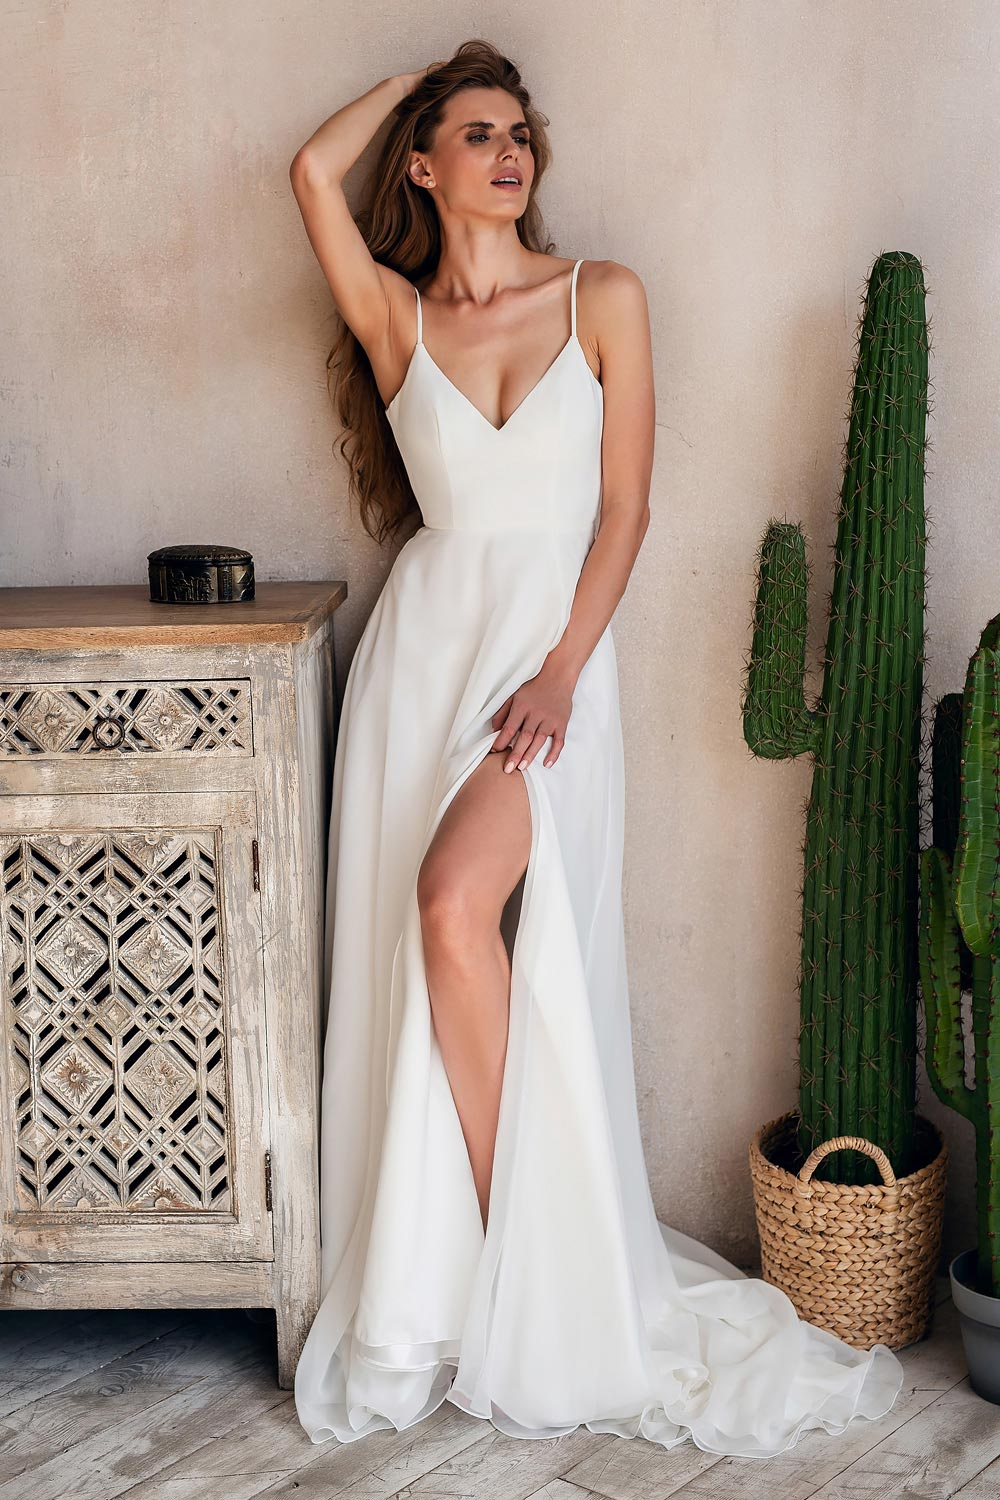 boho wedding dress wedding dress uk boho wedding dress wedding dress shops near me 48